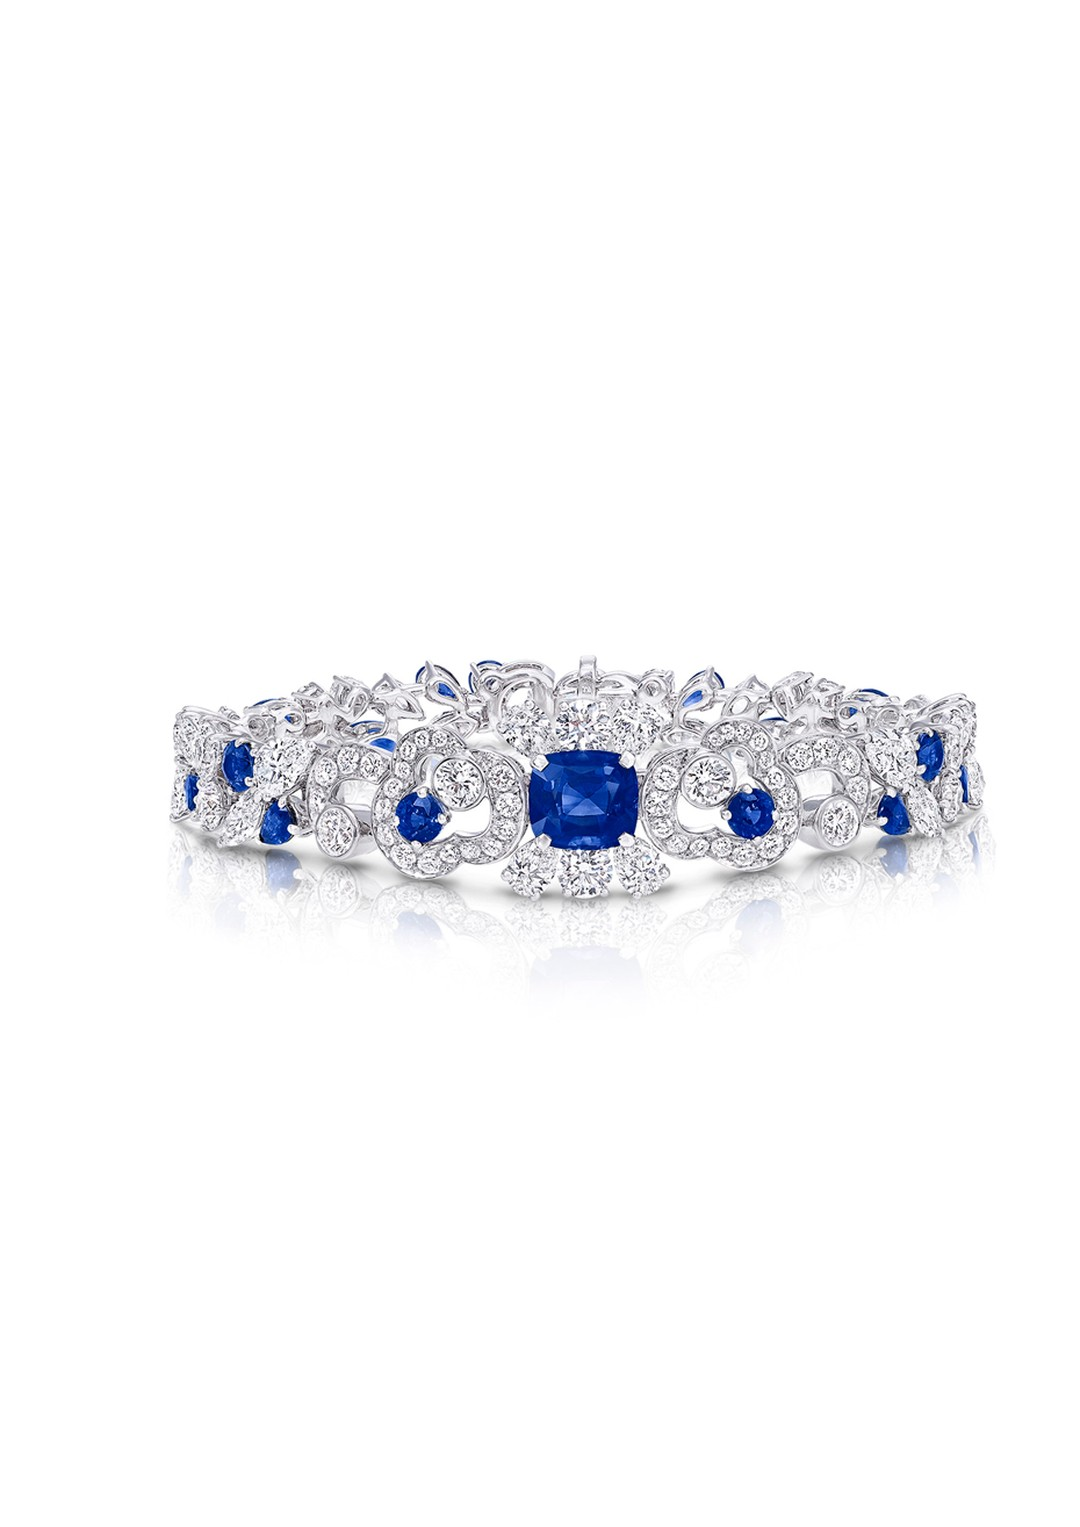 Graff Nuage collection sapphire and diamond bracelet.